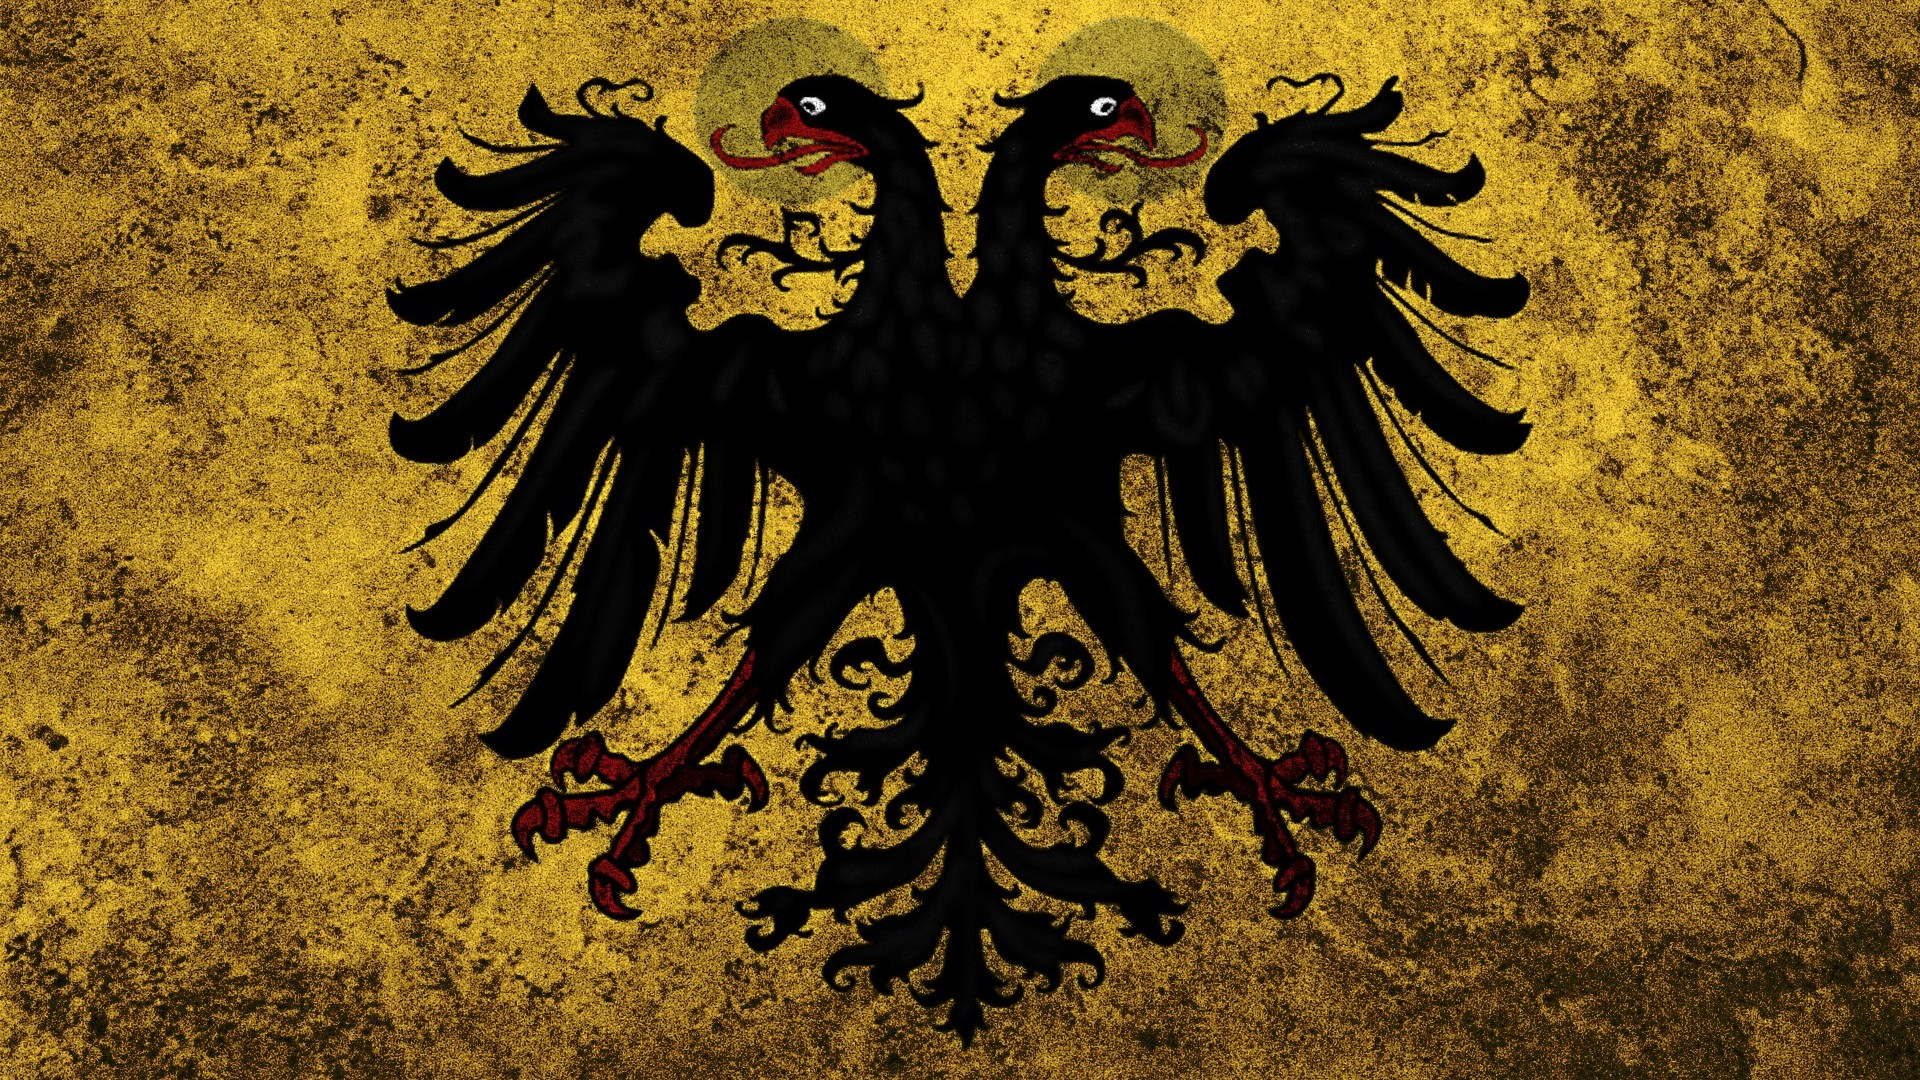 Holy Roman Empire Flag Digital Art Hd Wallpaper 1920x1080 5563